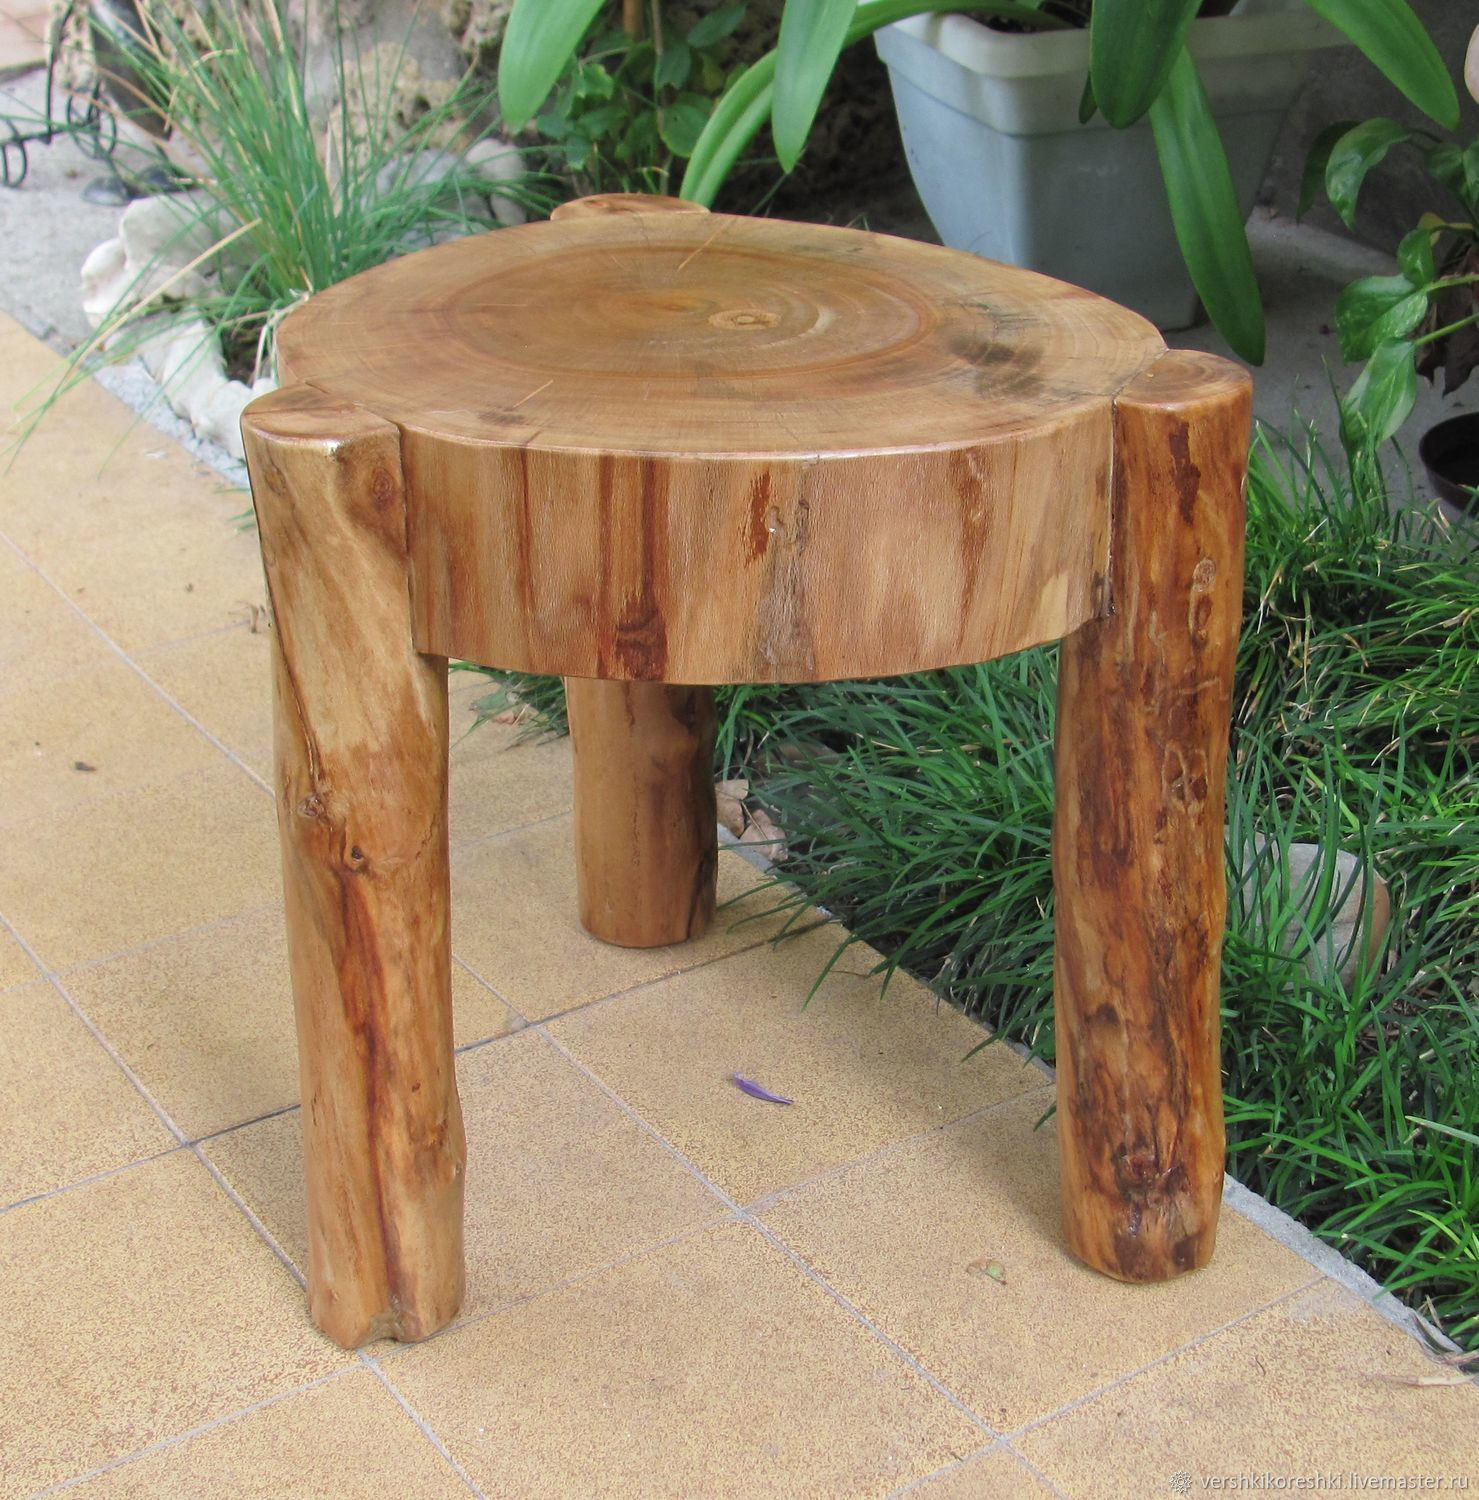 Order A stool a chair a chair made of wood. & A stool a chair a chair made of wood u2013 shop online on Livemaster ...